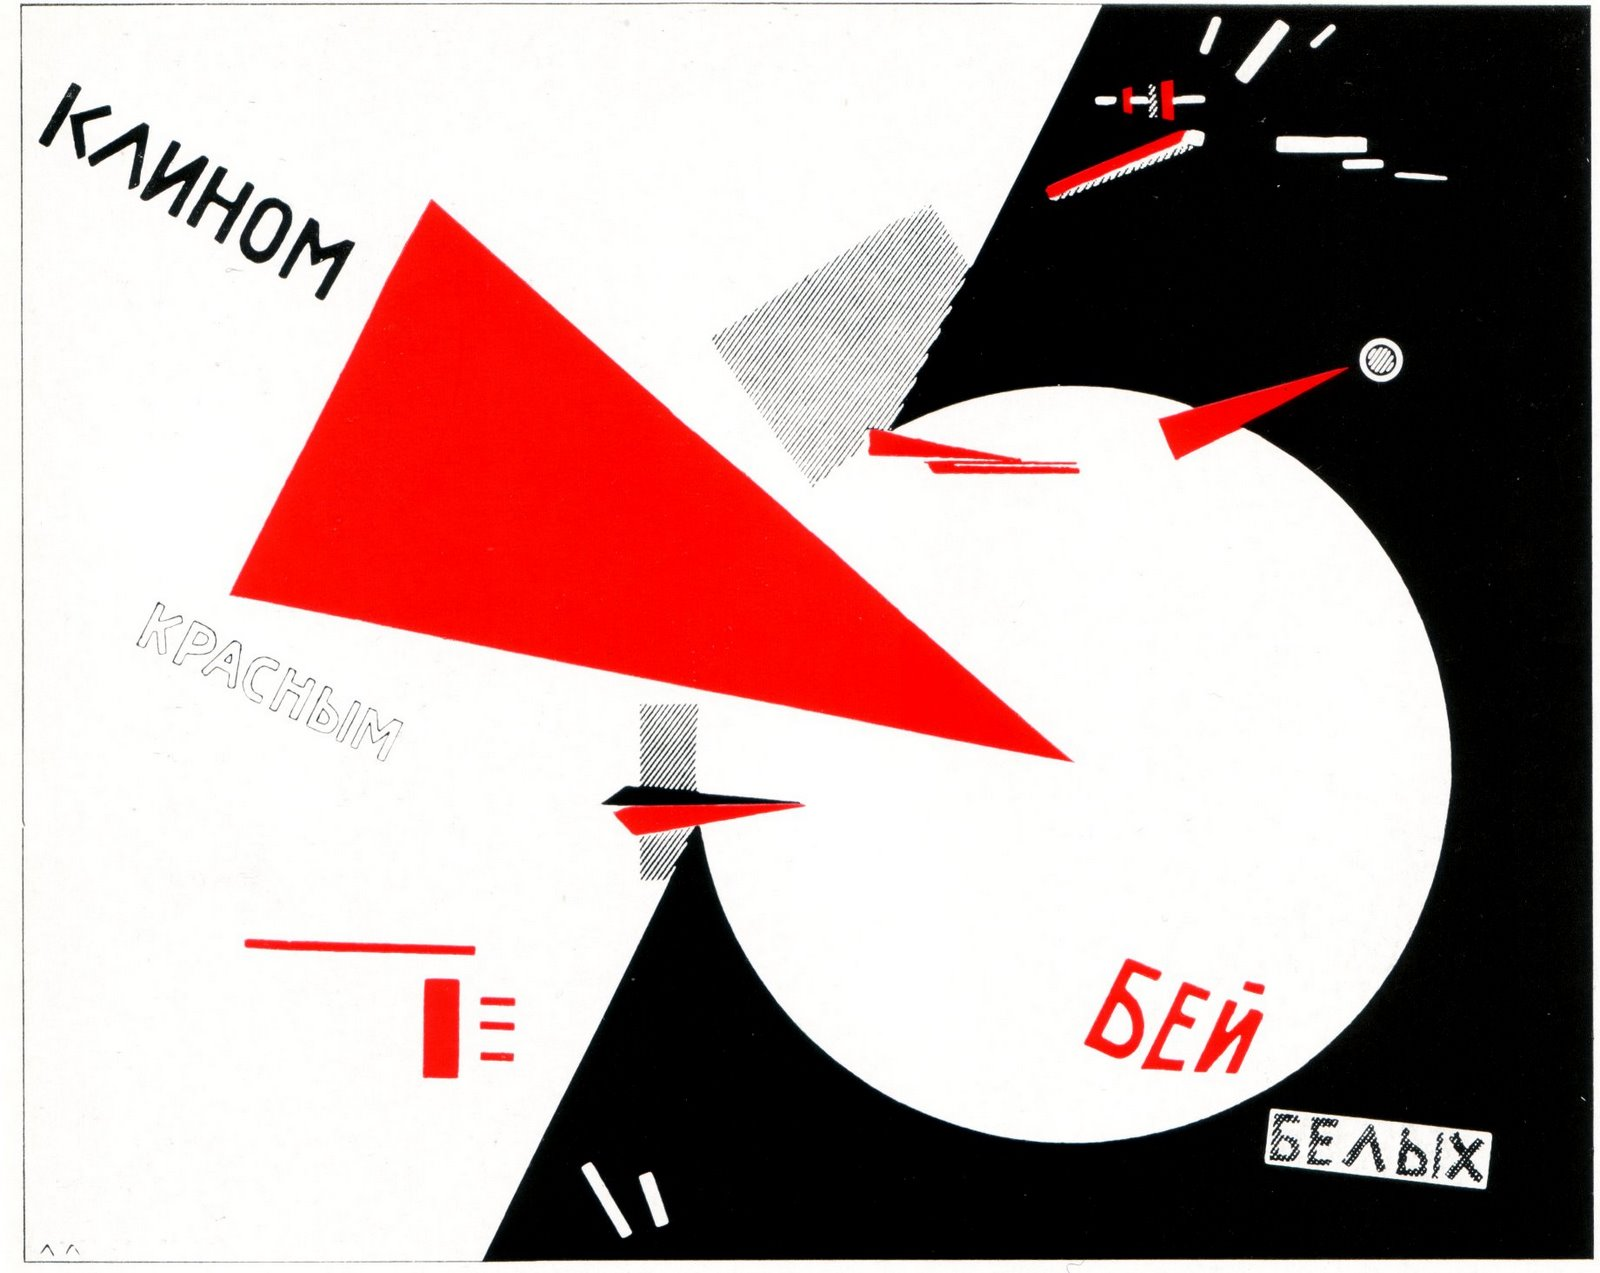 Beat The Whites With The Red Wedge, by El Lissitzky, 1920.